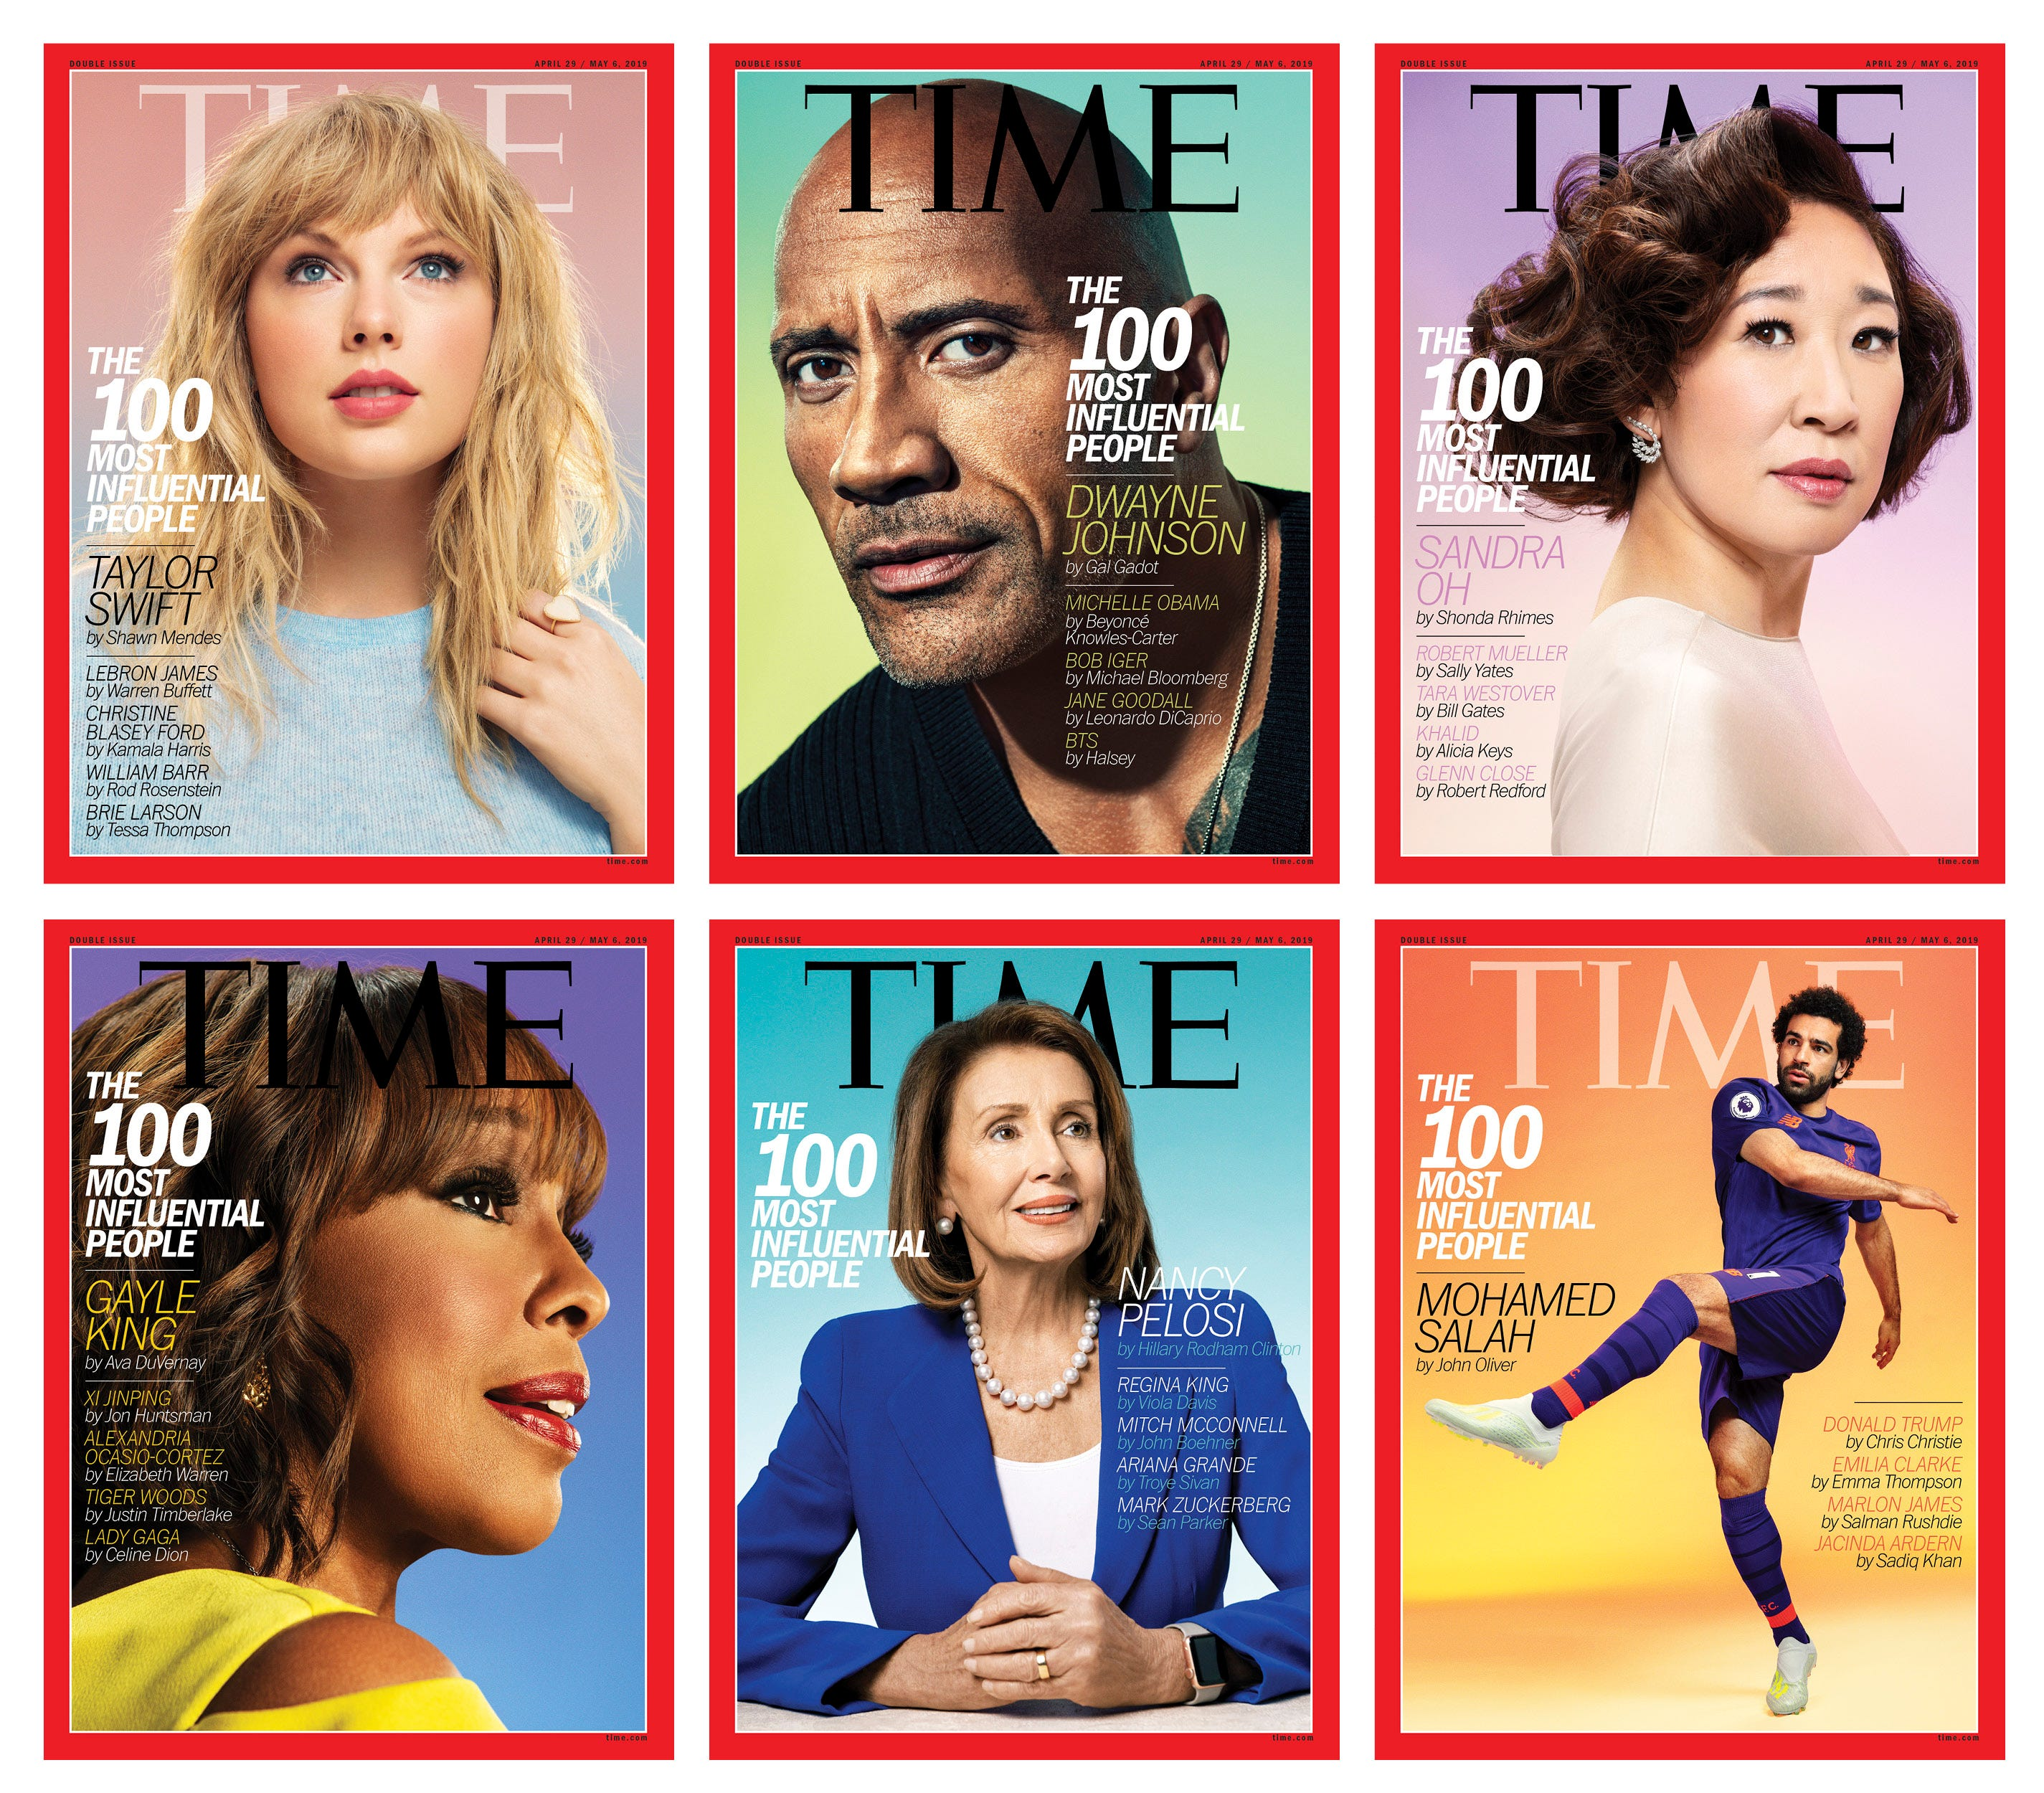 Dwayne Johnson, Taylor Swift, Gayle King, more cover Time's 100 most influential people issue